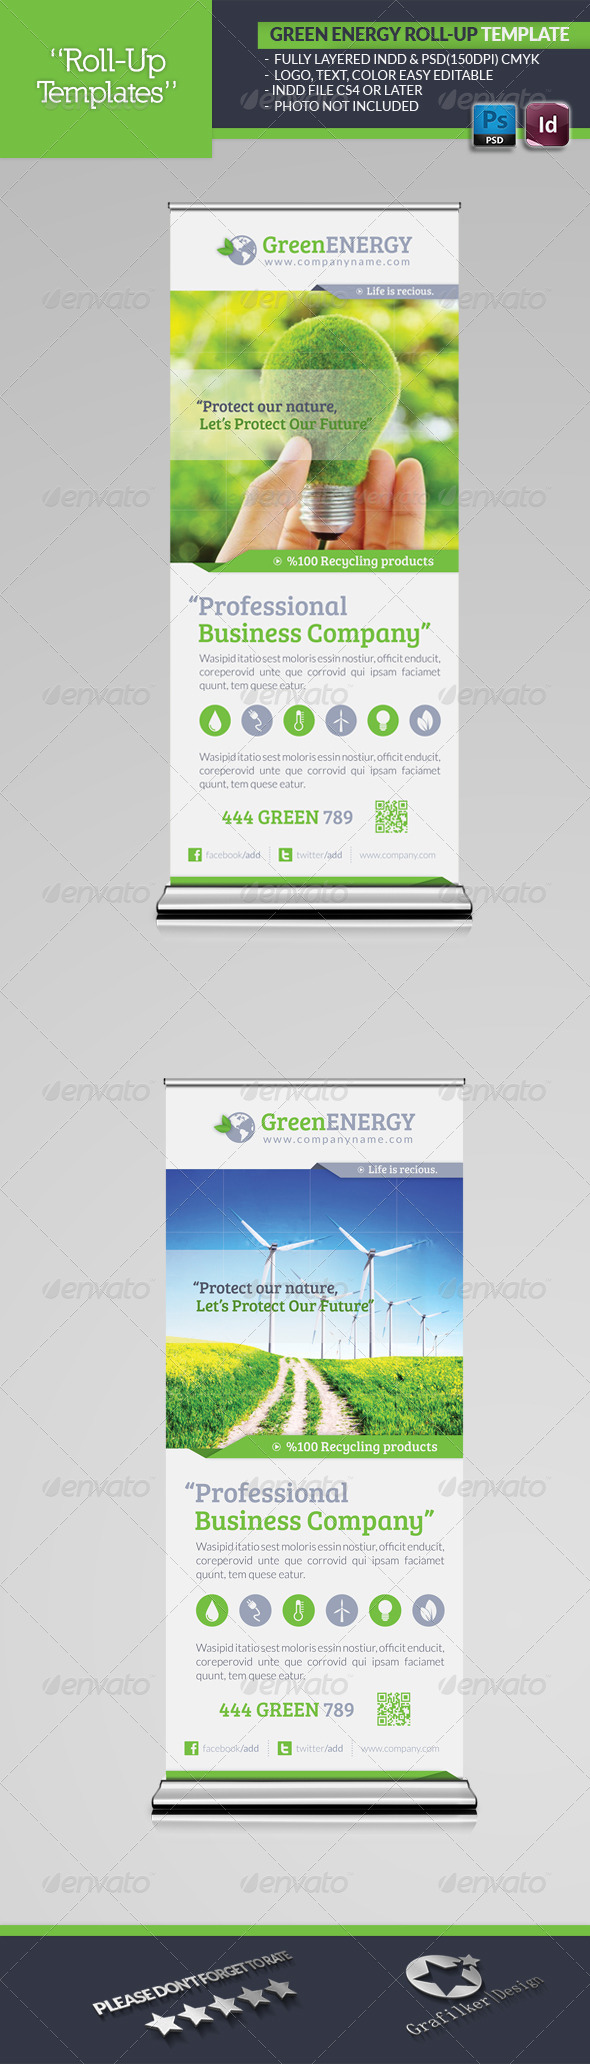 GraphicRiver Green Energy Roll-Up Template 4887252